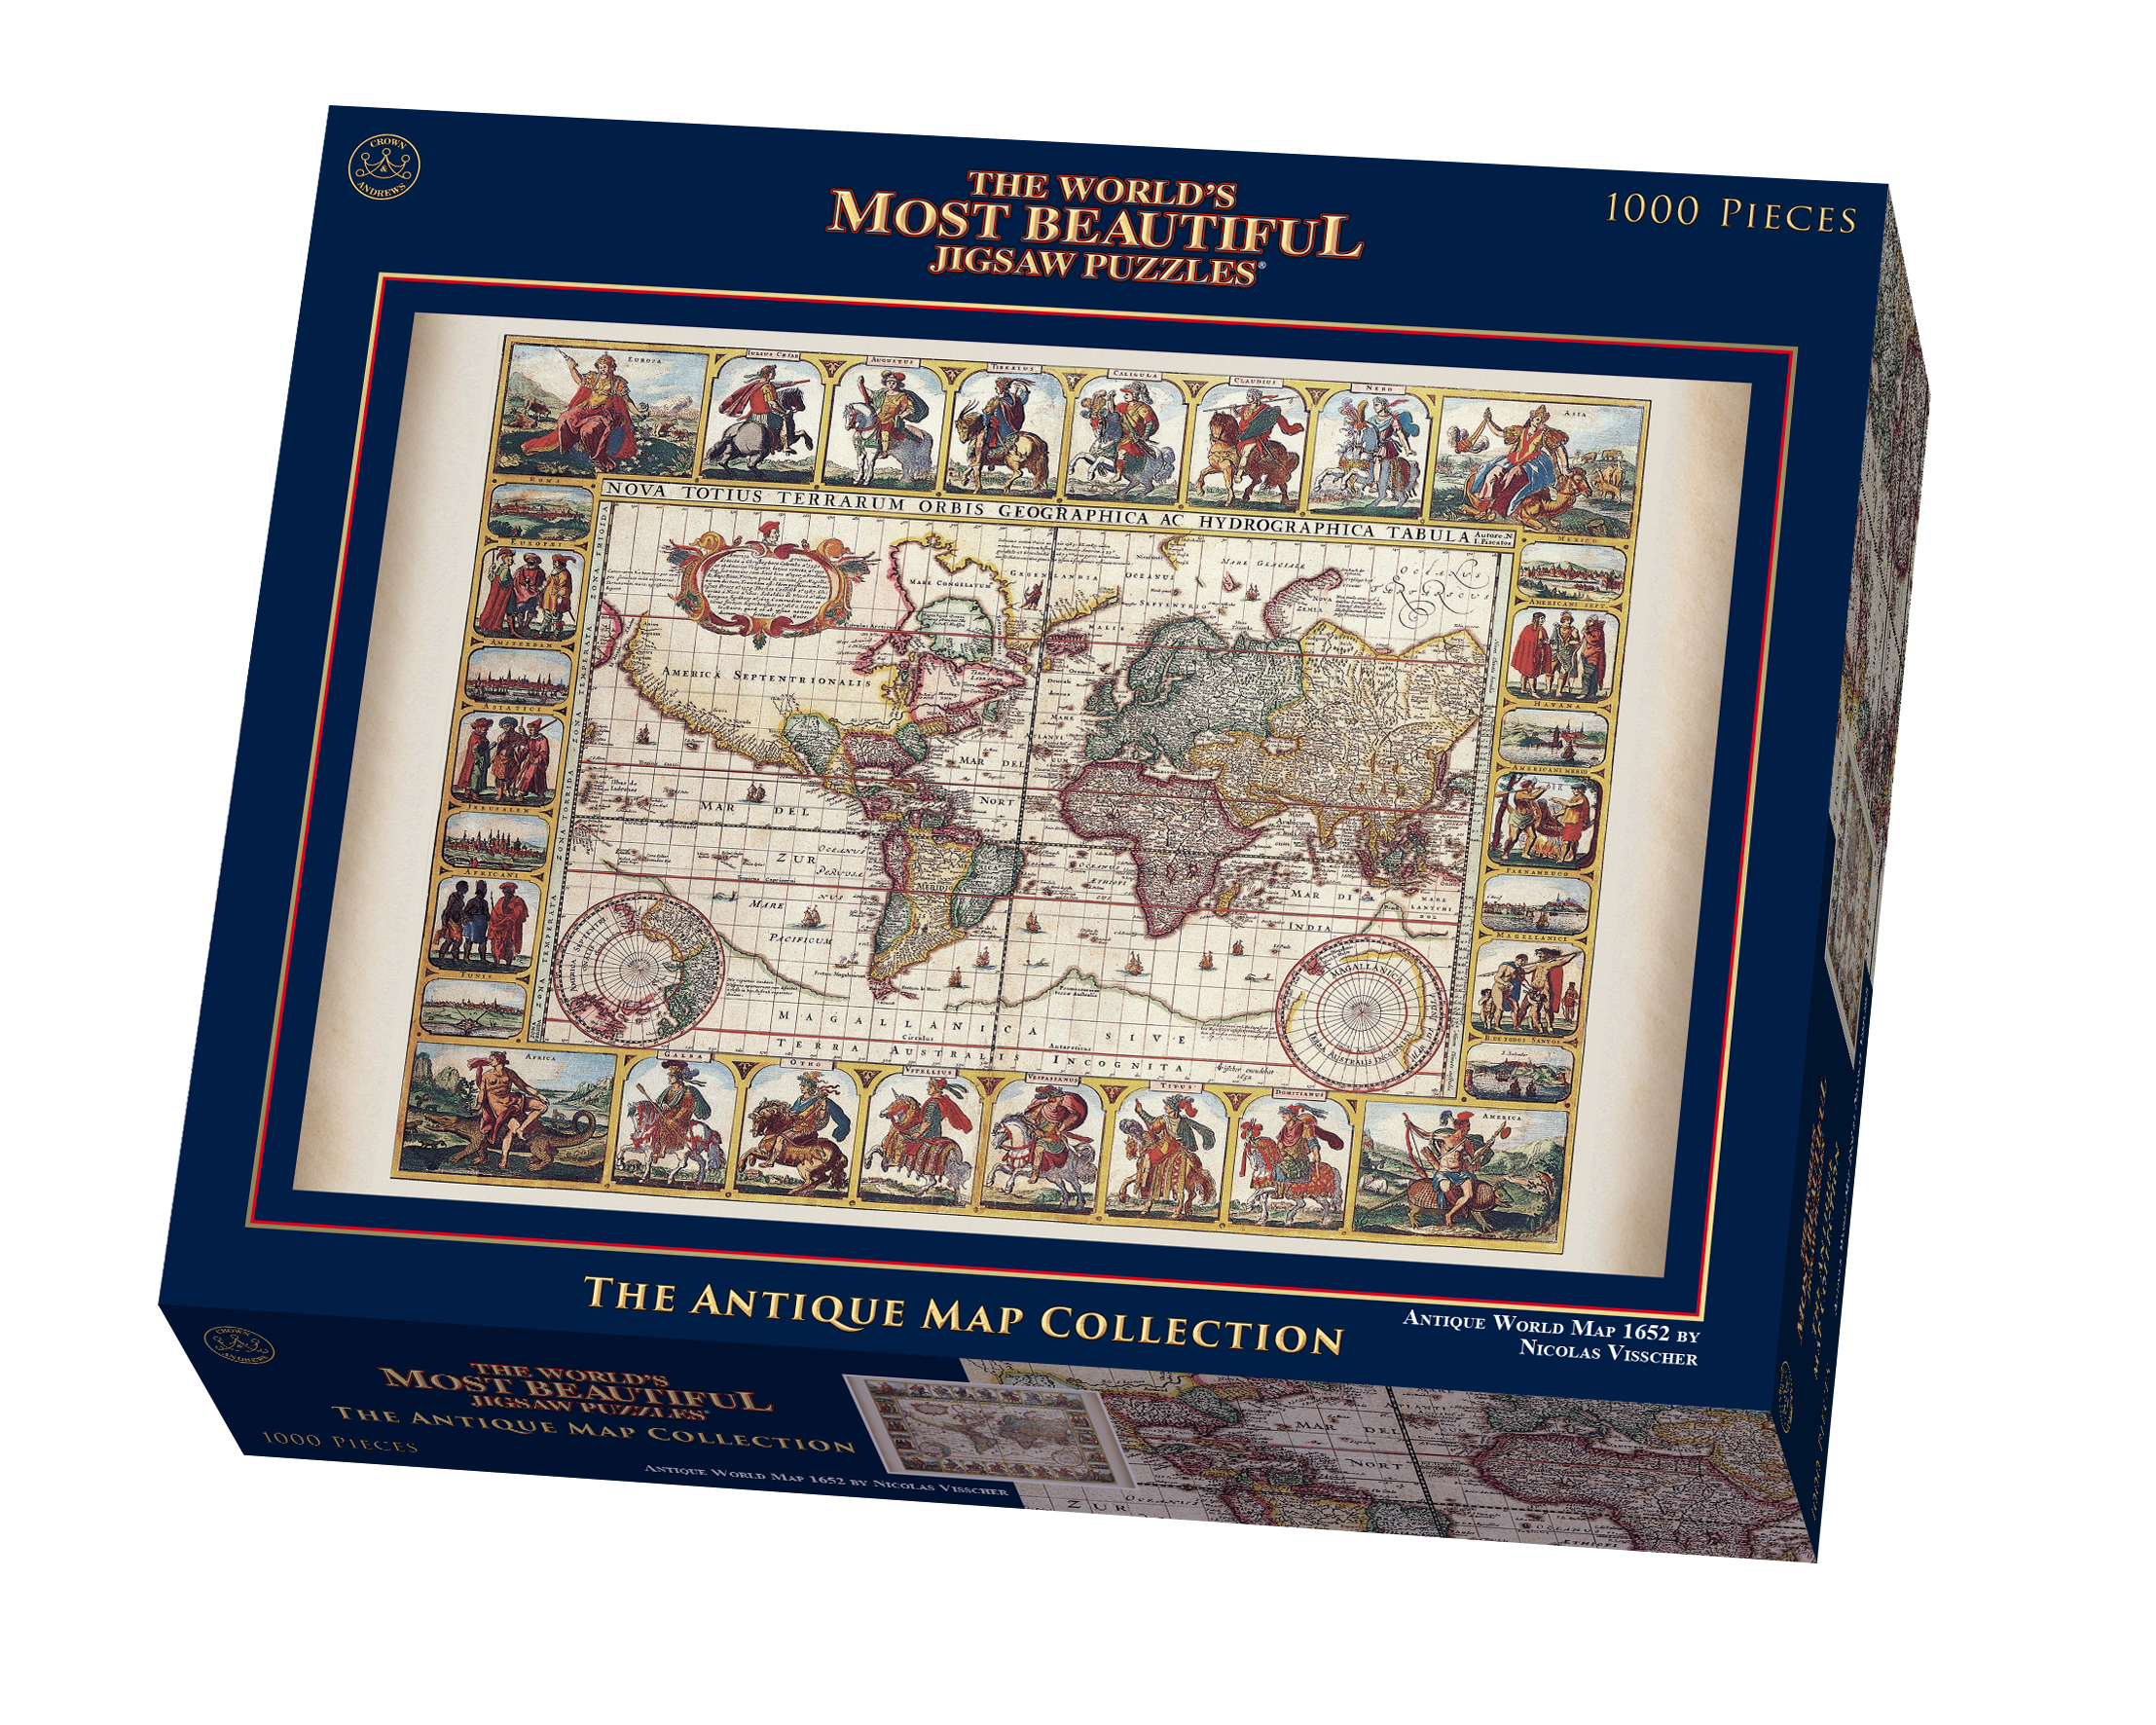 The worlds most beautiful antique world map by nicolas vischer the worlds most beautiful antique world map by nicolas vischer jigsaw puzzle goliath games goliath games gumiabroncs Gallery